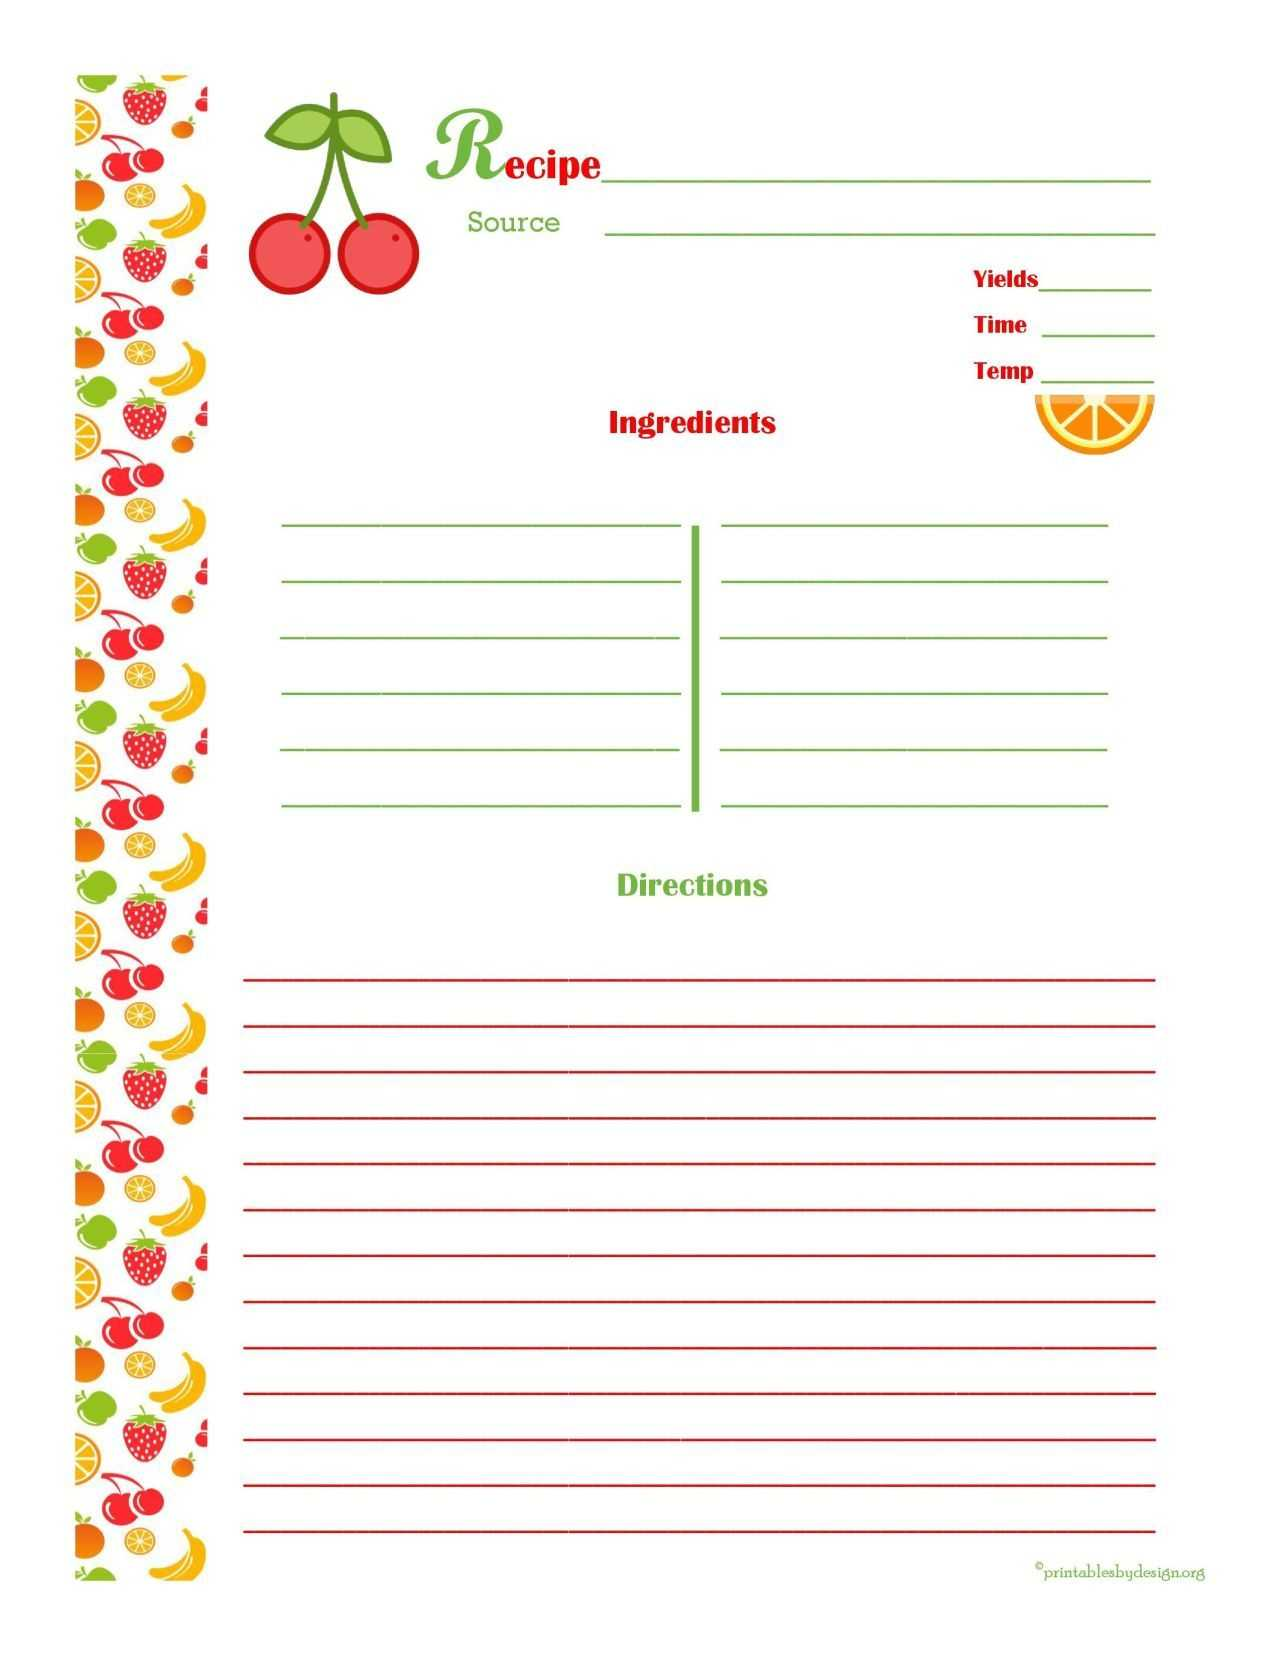 Free Editable Recipe Card Templates For Microsoft Word With Regard To Microsoft Word Recipe Card Template